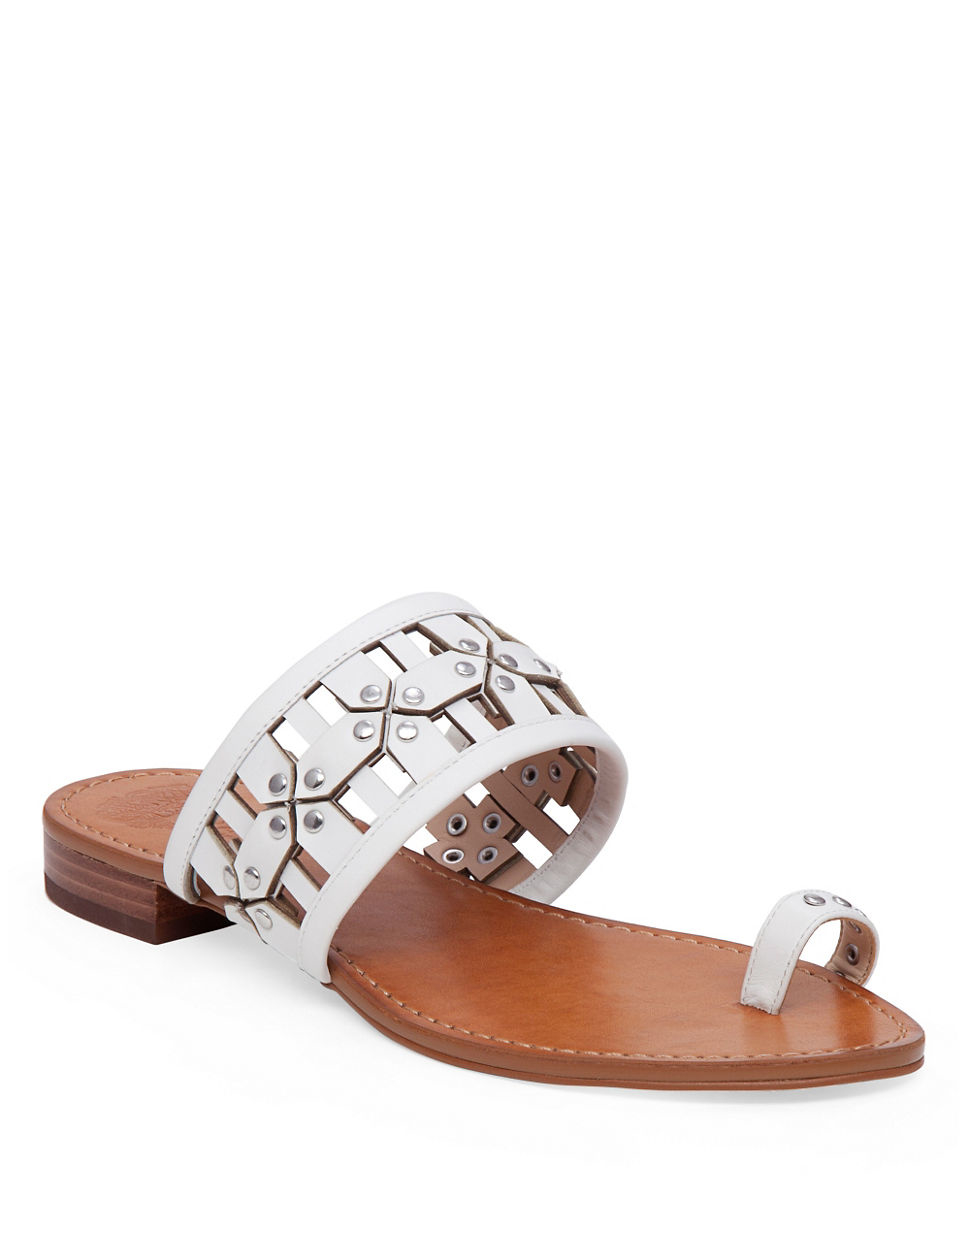 Flat Sandals Leather Toe Ring